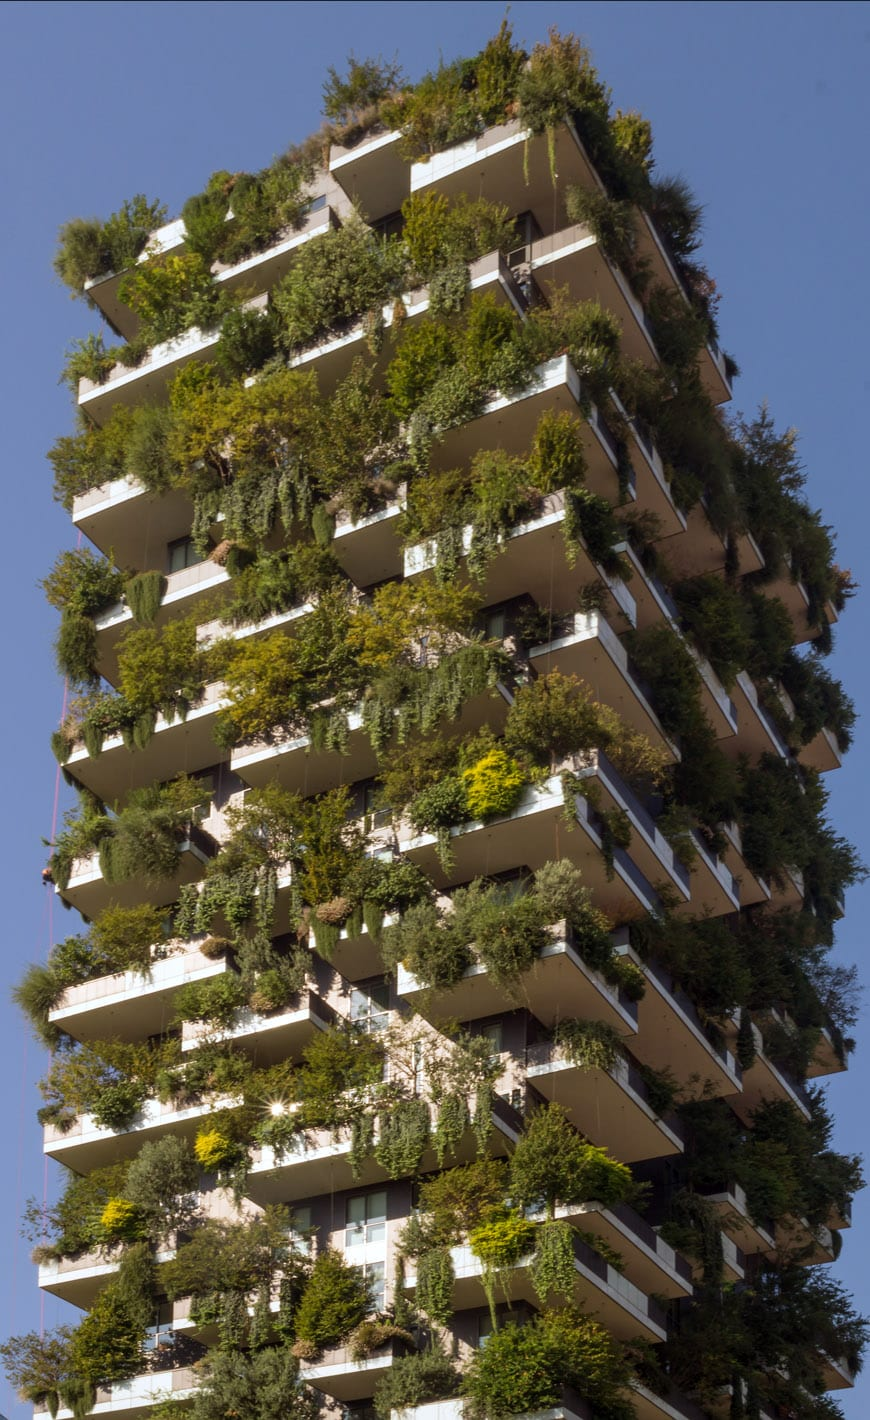 Bosco Verticale Vertical Forest towers Milan Stefano Boeri 05 Inexhibit